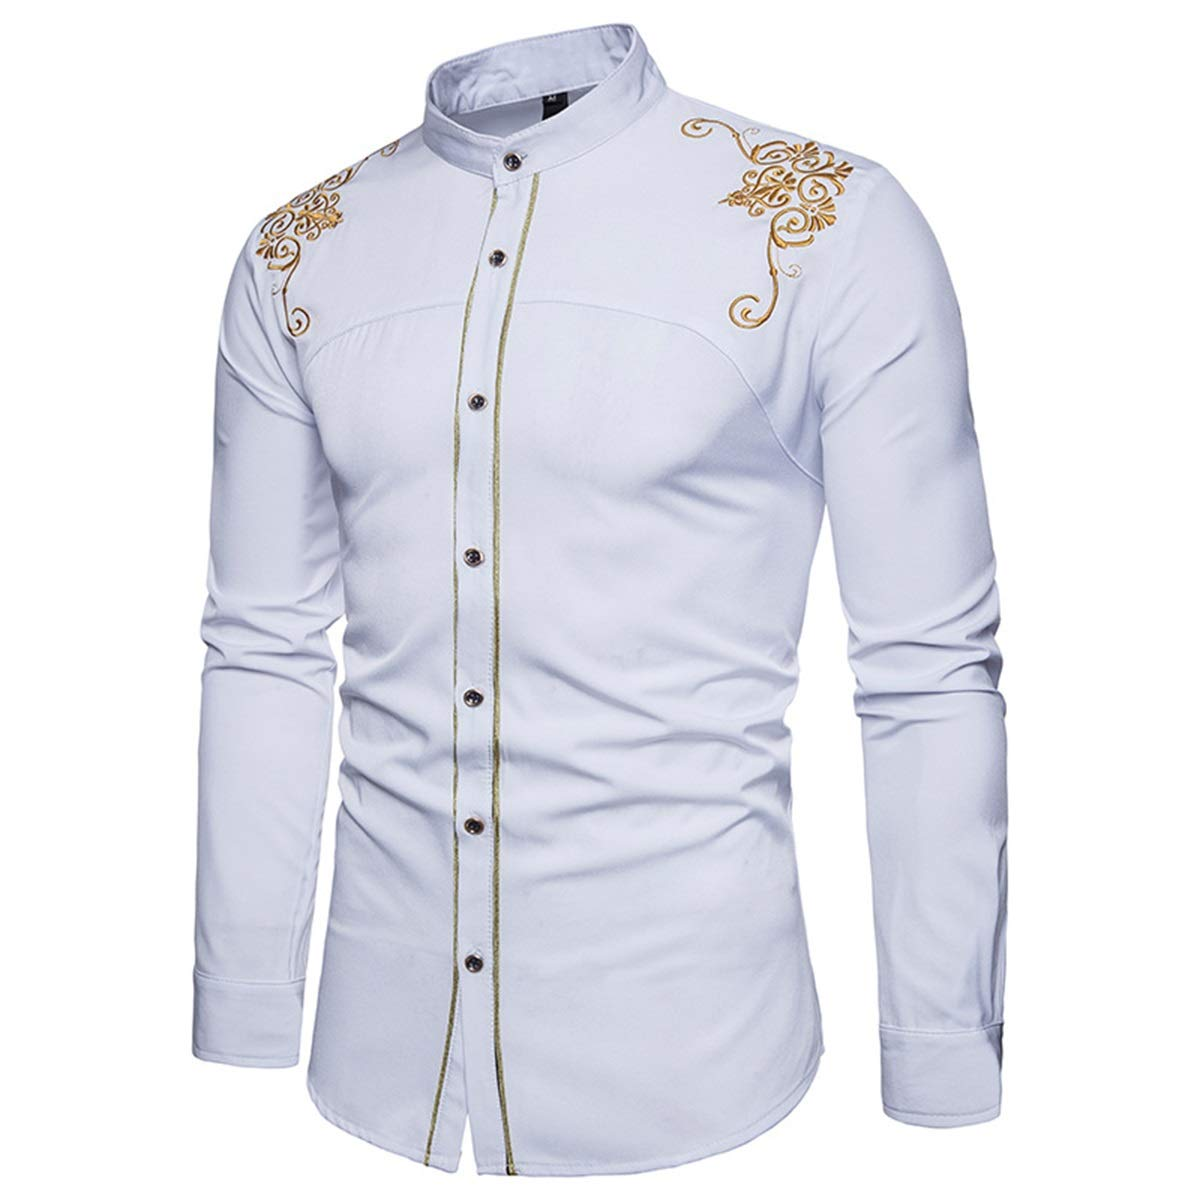 Mens Embroidery Palace Slim Casual Stand Collar Long Sleeves Button Down Dress Shirt Top